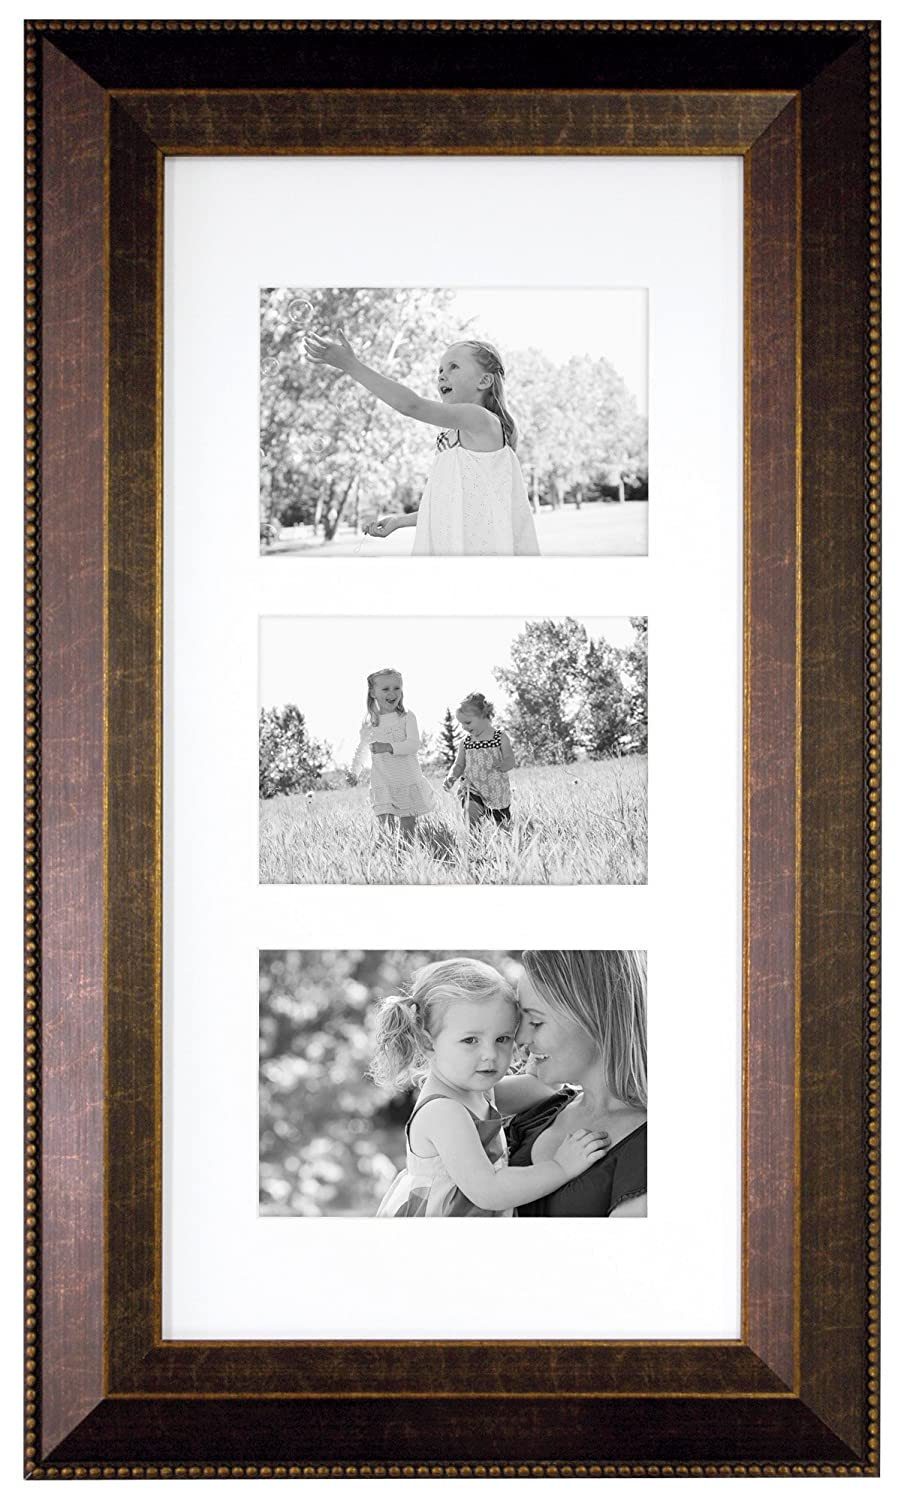 MCS 11x14 Inch Bead Wall Frame with 8x10 Inch Mat Opening, Espresso (45512) MCS Industries Inc.